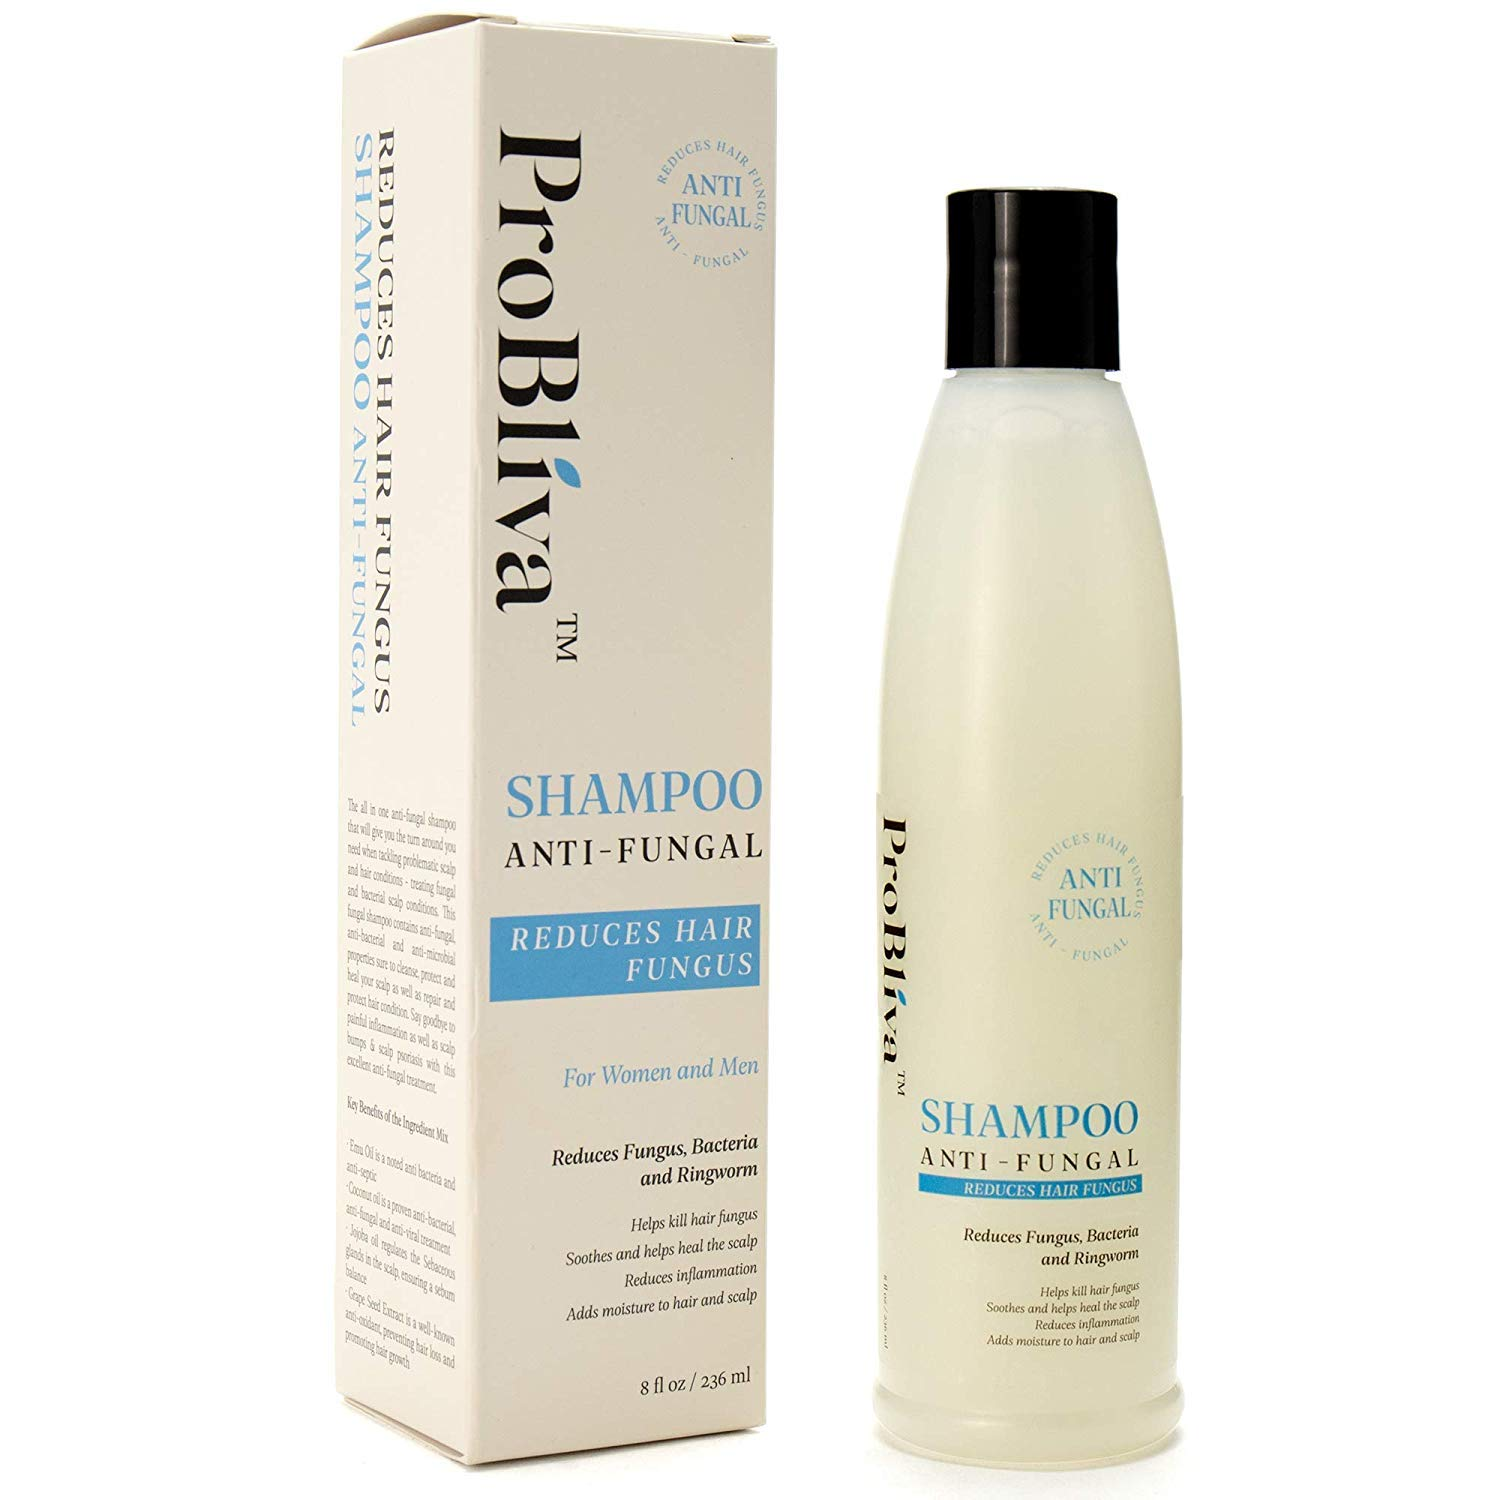 ProBliva Fungus Shampoo for Hair & Scalp - for Men and Women - Fights Fungus, Ringworm, Itchy Scalp - Antimicrobial, Anti-Bacterial - Contains Natural Ingredients Coconut Oil, Jojoba Oil, Emu Oil by ProBliva